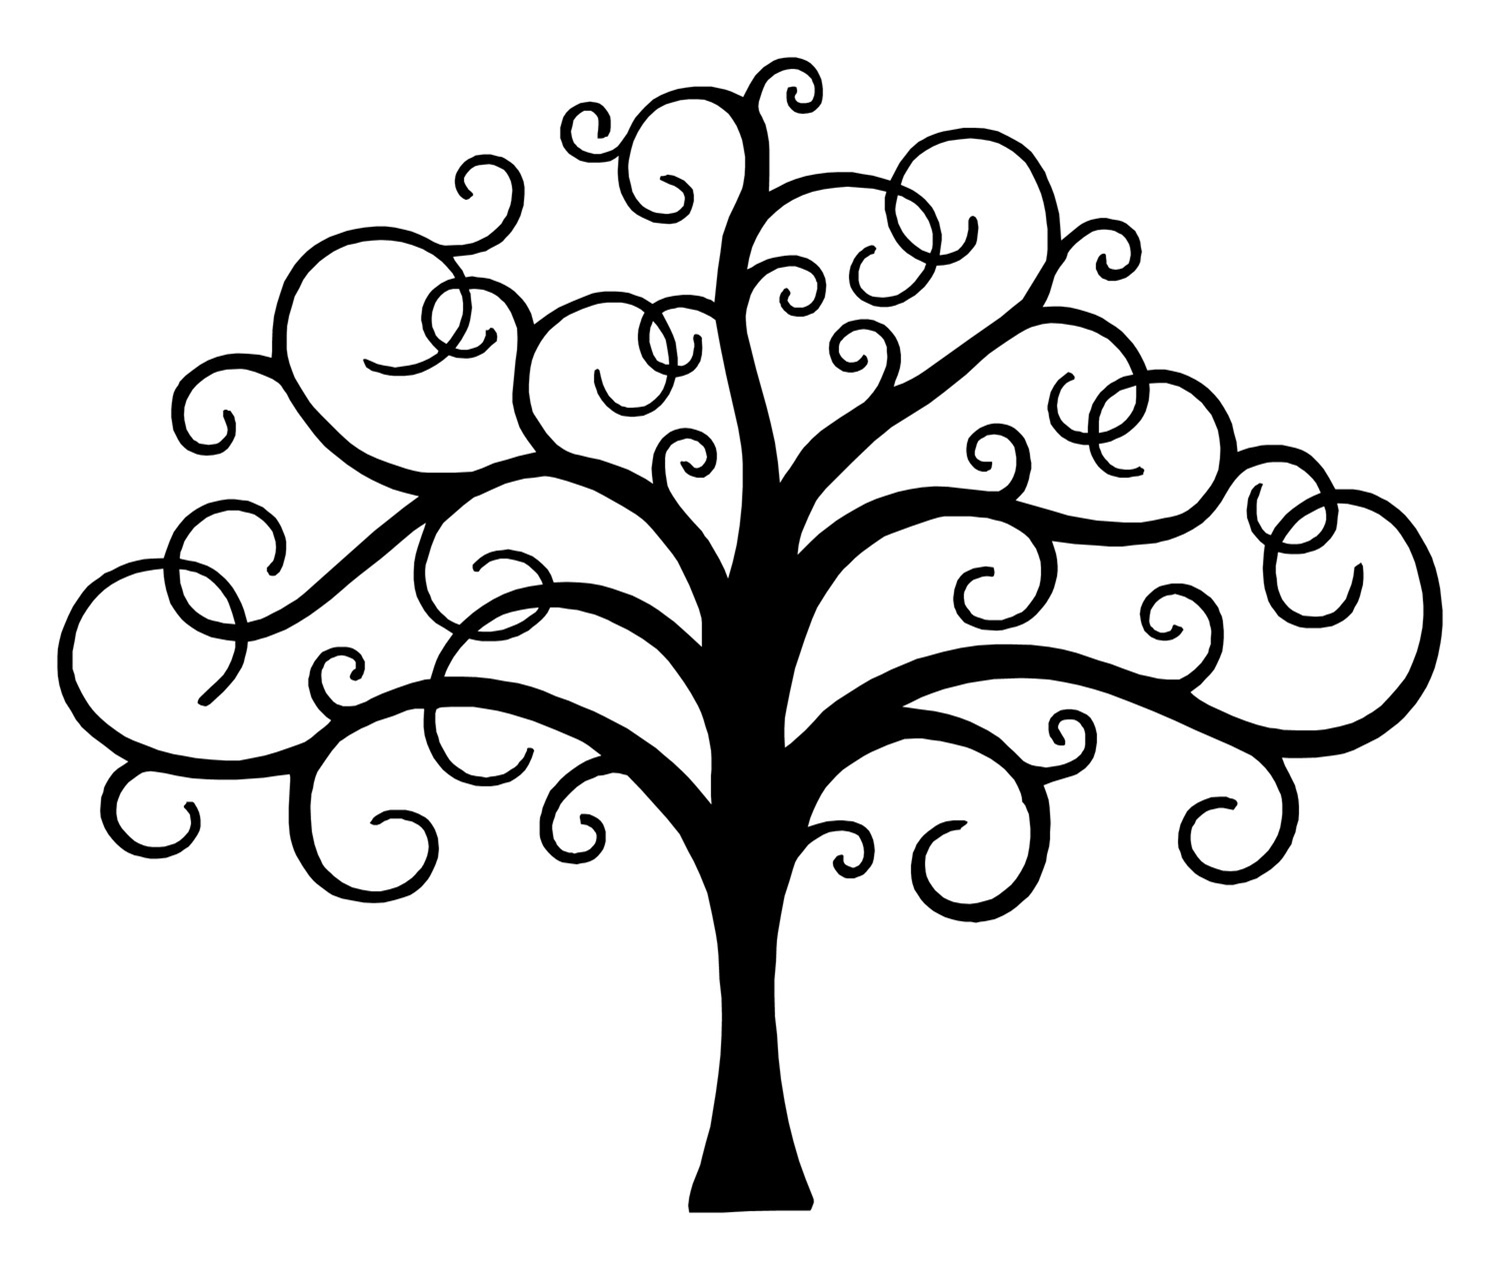 Free Tree Of Life, Download Free Clip Art, Free Clip Art on